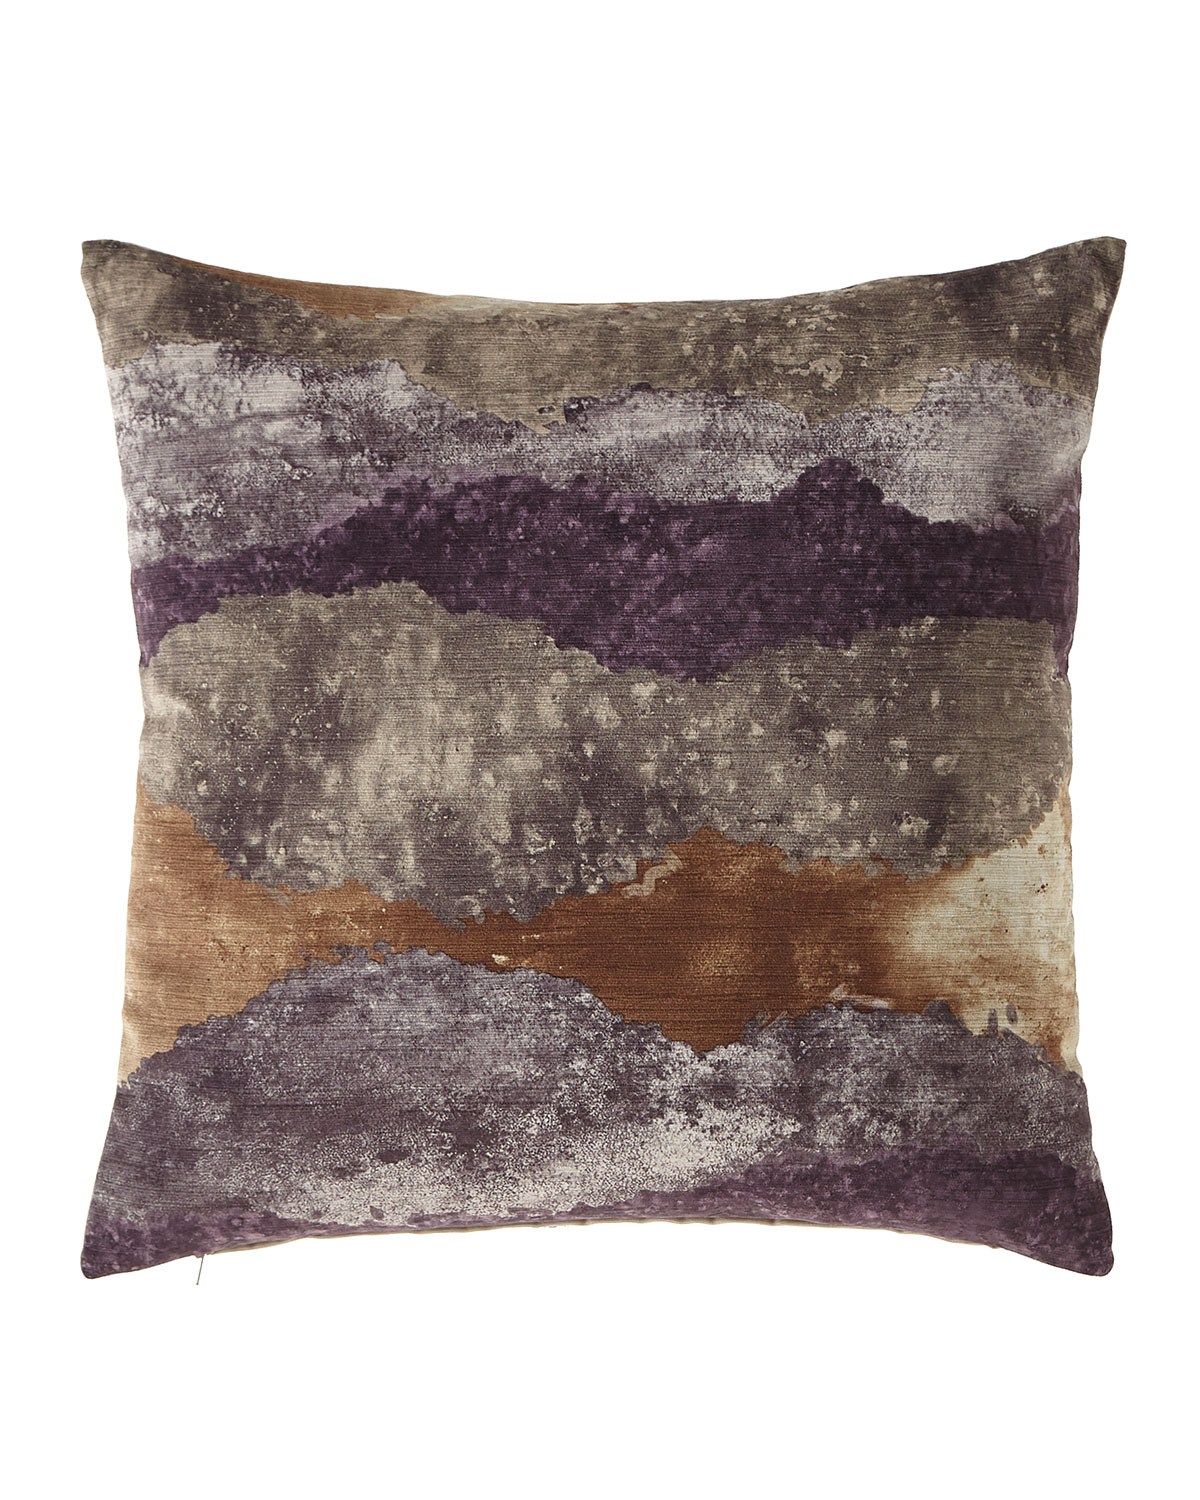 Eastern Accents Mist Amethyst Knife-Edge Pillow